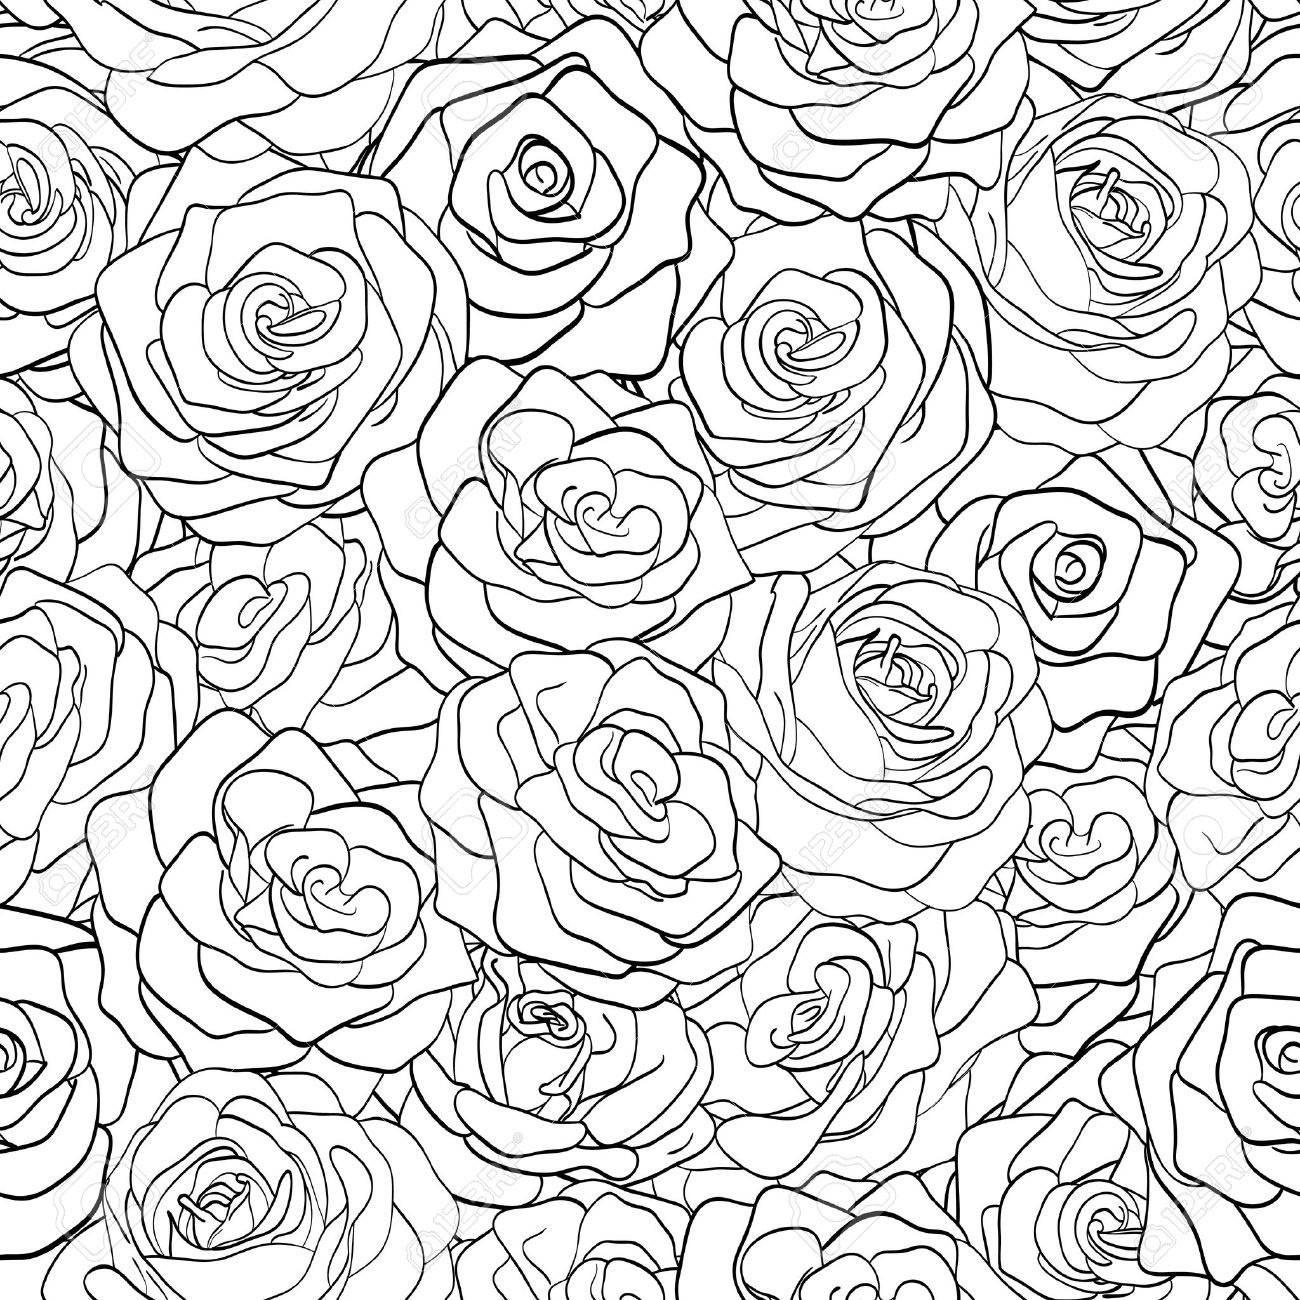 1300x1300 Beautiful Black And White Seamless Pattern In Roses With Contours